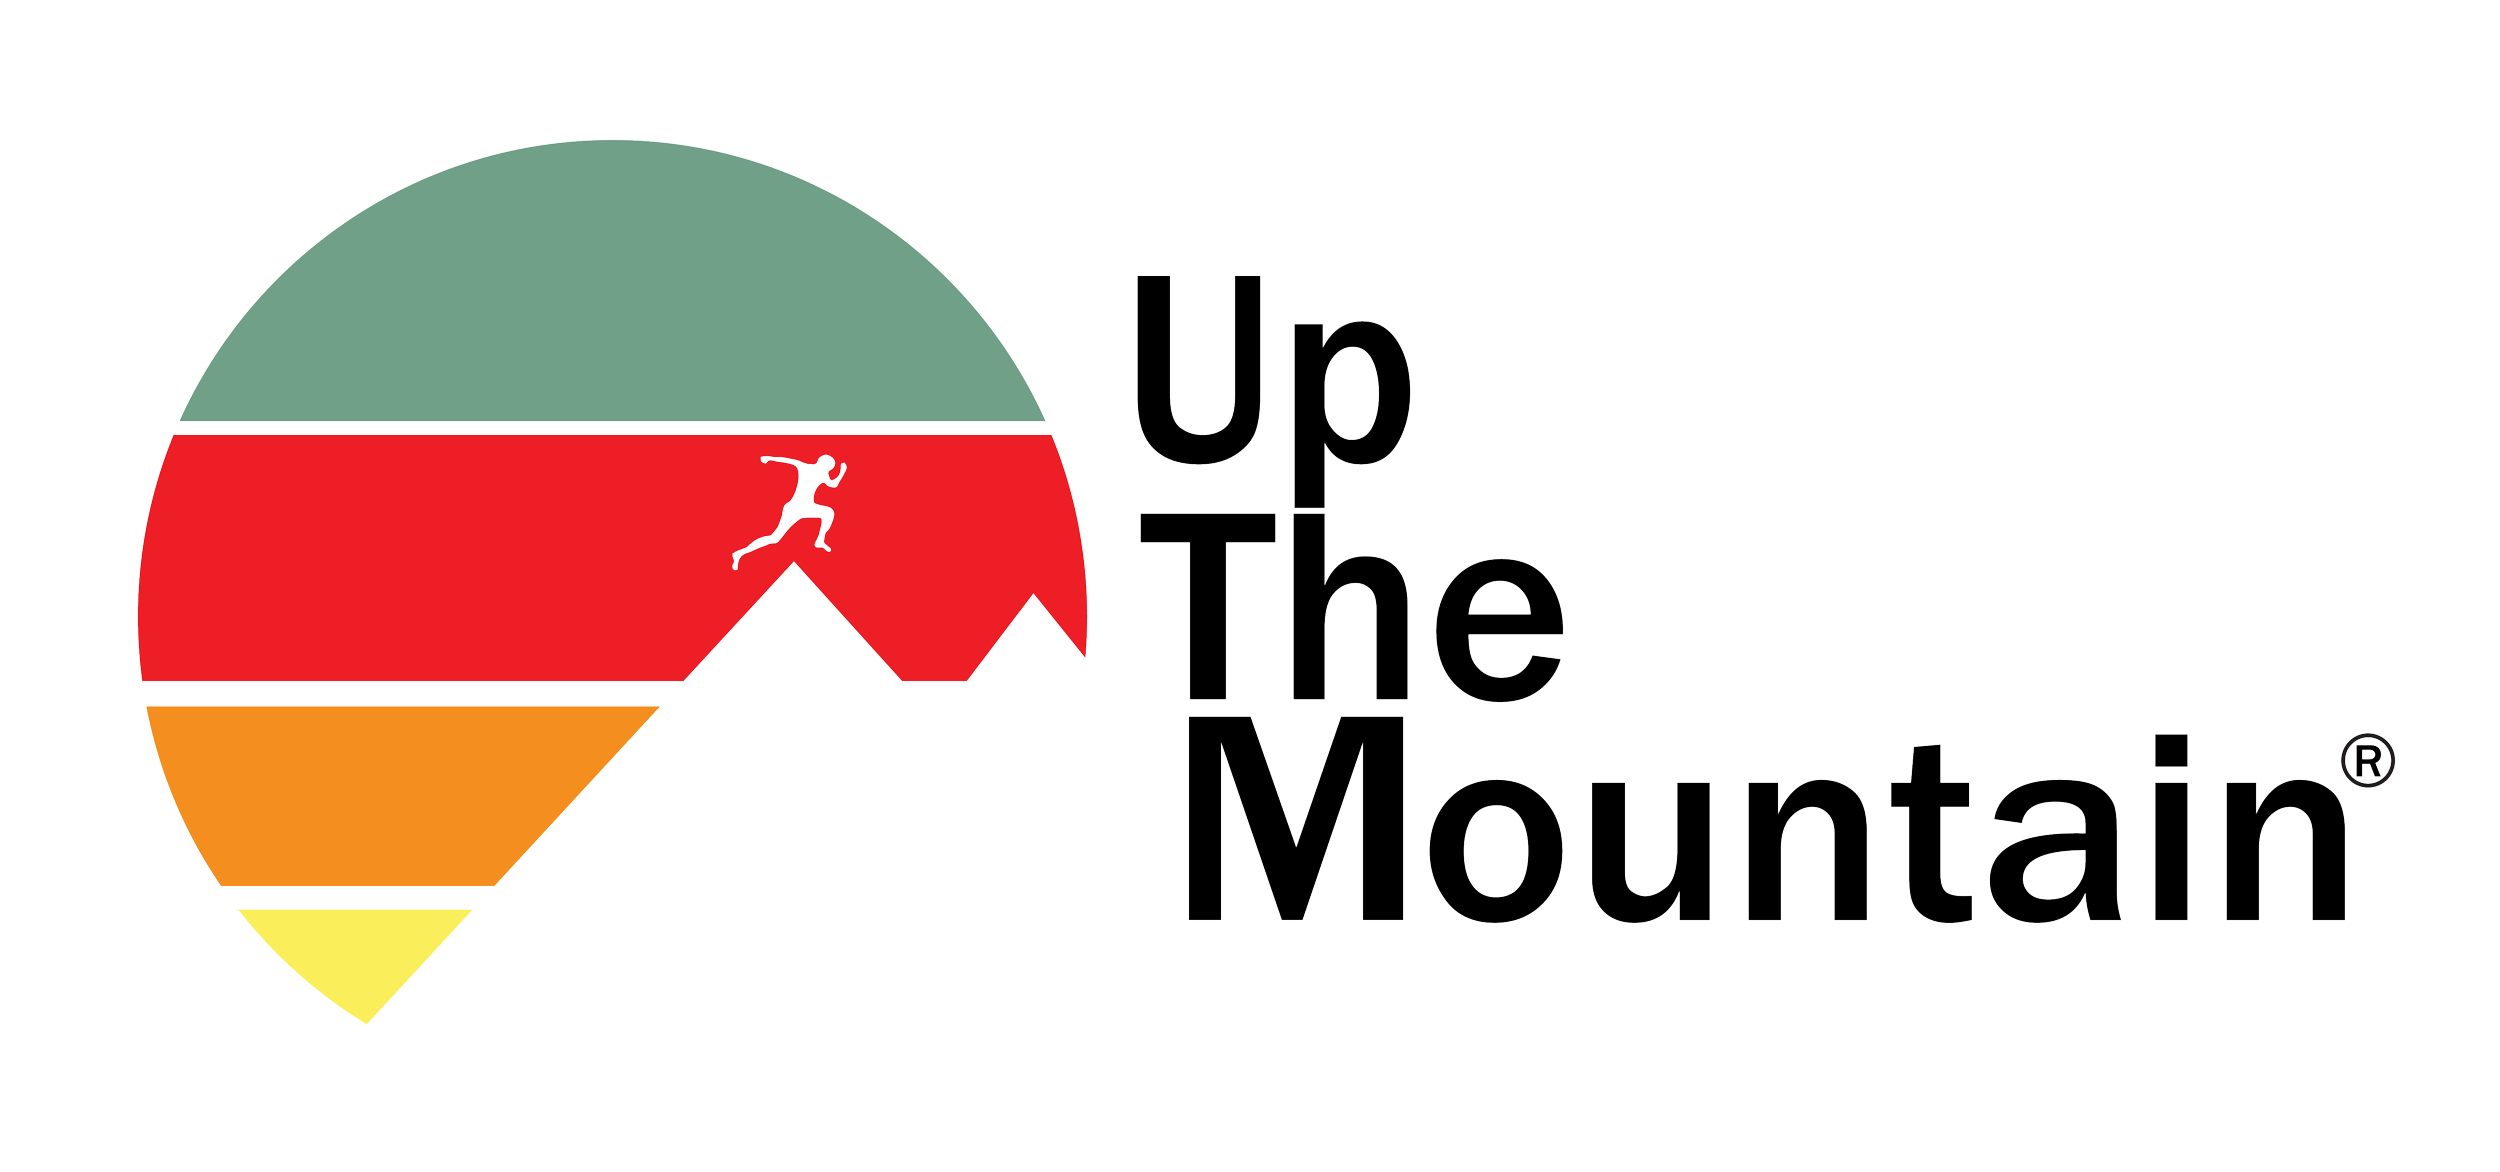 Up The Mountain Camisetas de Montanha